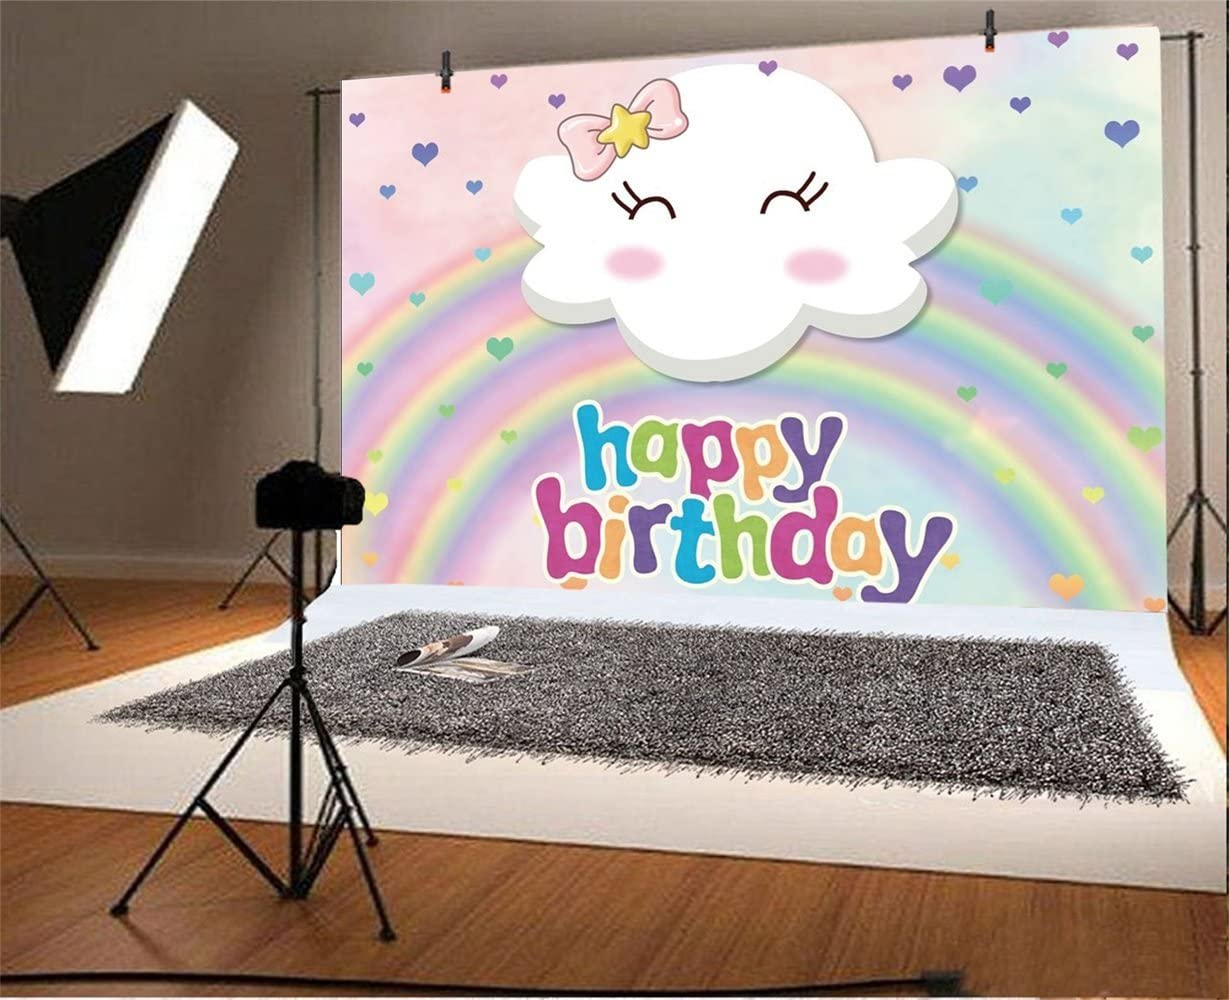 Laeacco Cartoon Happy Birthday Backdrop 6x4ft Vinyl Pastel Cute Smiling Cloud with Pink Bow Photography Background Blurry Rainbow Heart Design Kids Child Baby Shoot Birthday Party Banner Cake Smash